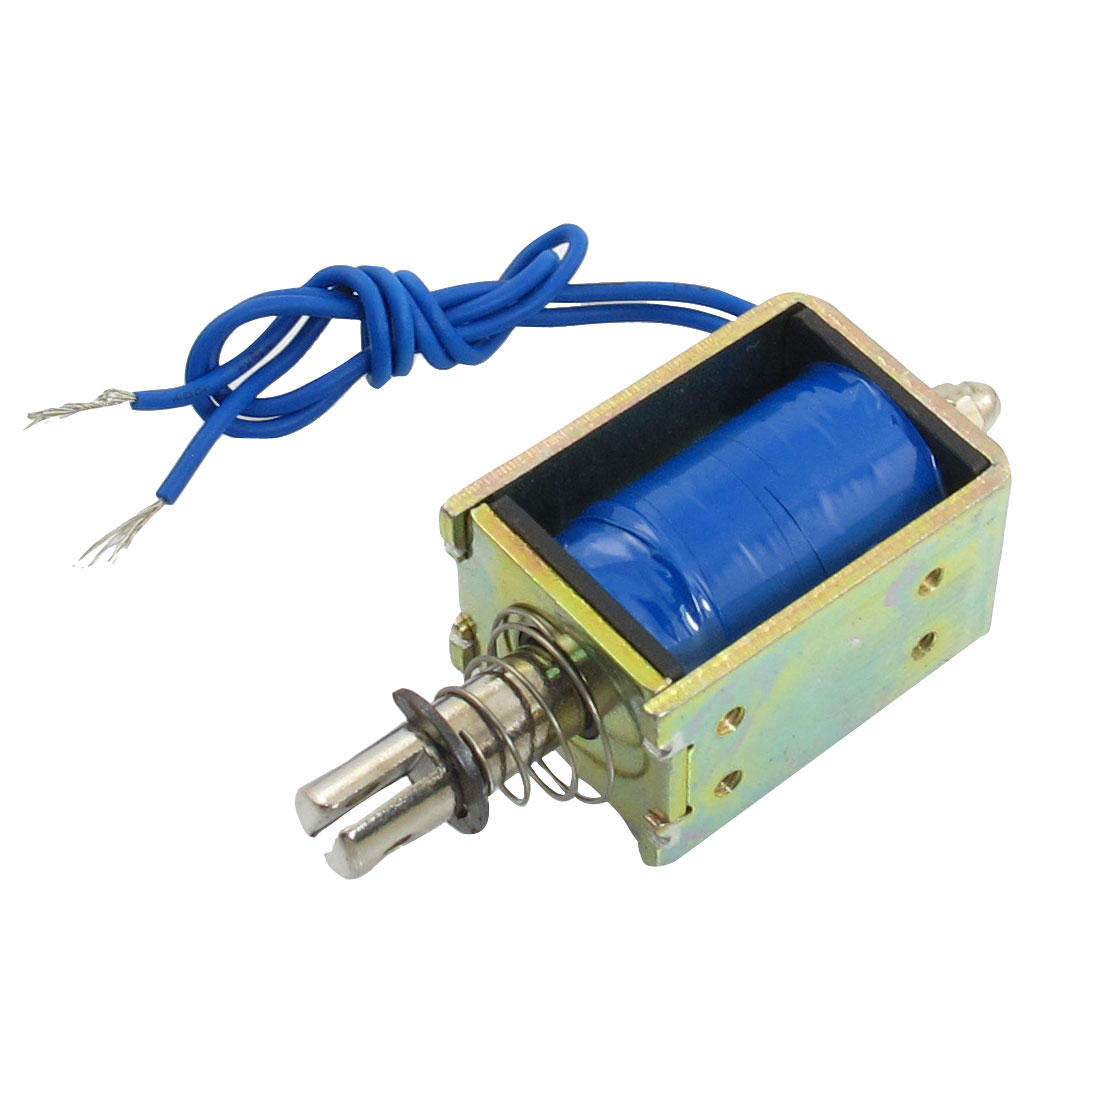 DC 24V 1A 10mm Stroke 0.2Kg Force Push Type Solenoid Electromagnet